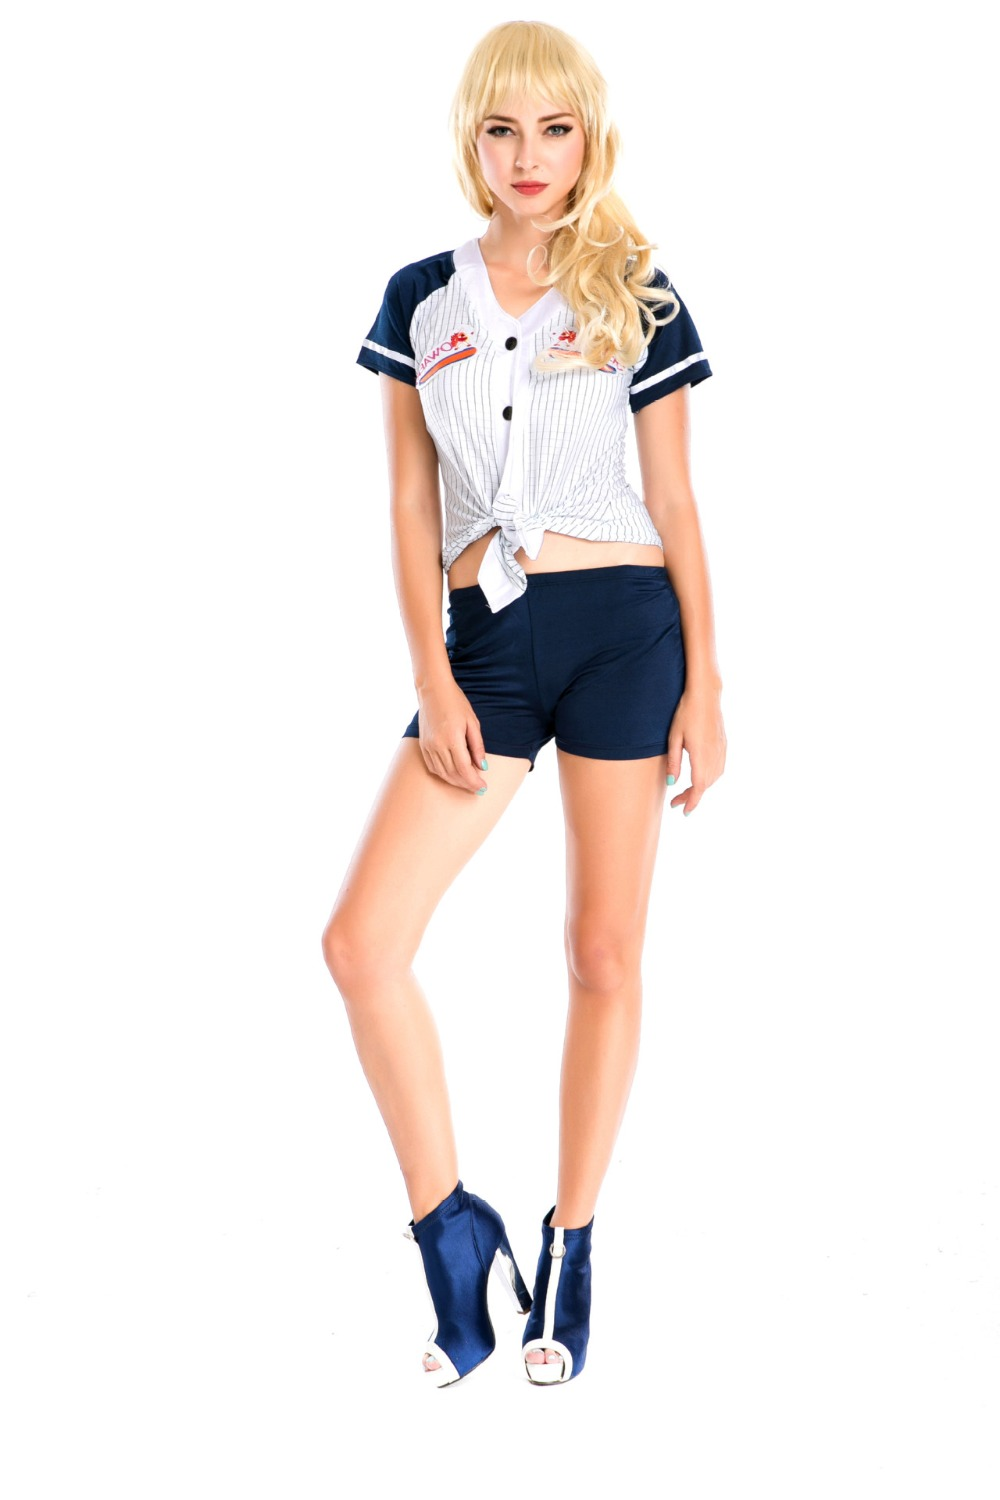 Fantasia Baseball Uniform Cosplay Sexy Women Blouse With Shorts Table Tennis Player Stage Halloween Costumes Deguisement Adultes(China (Mainland))